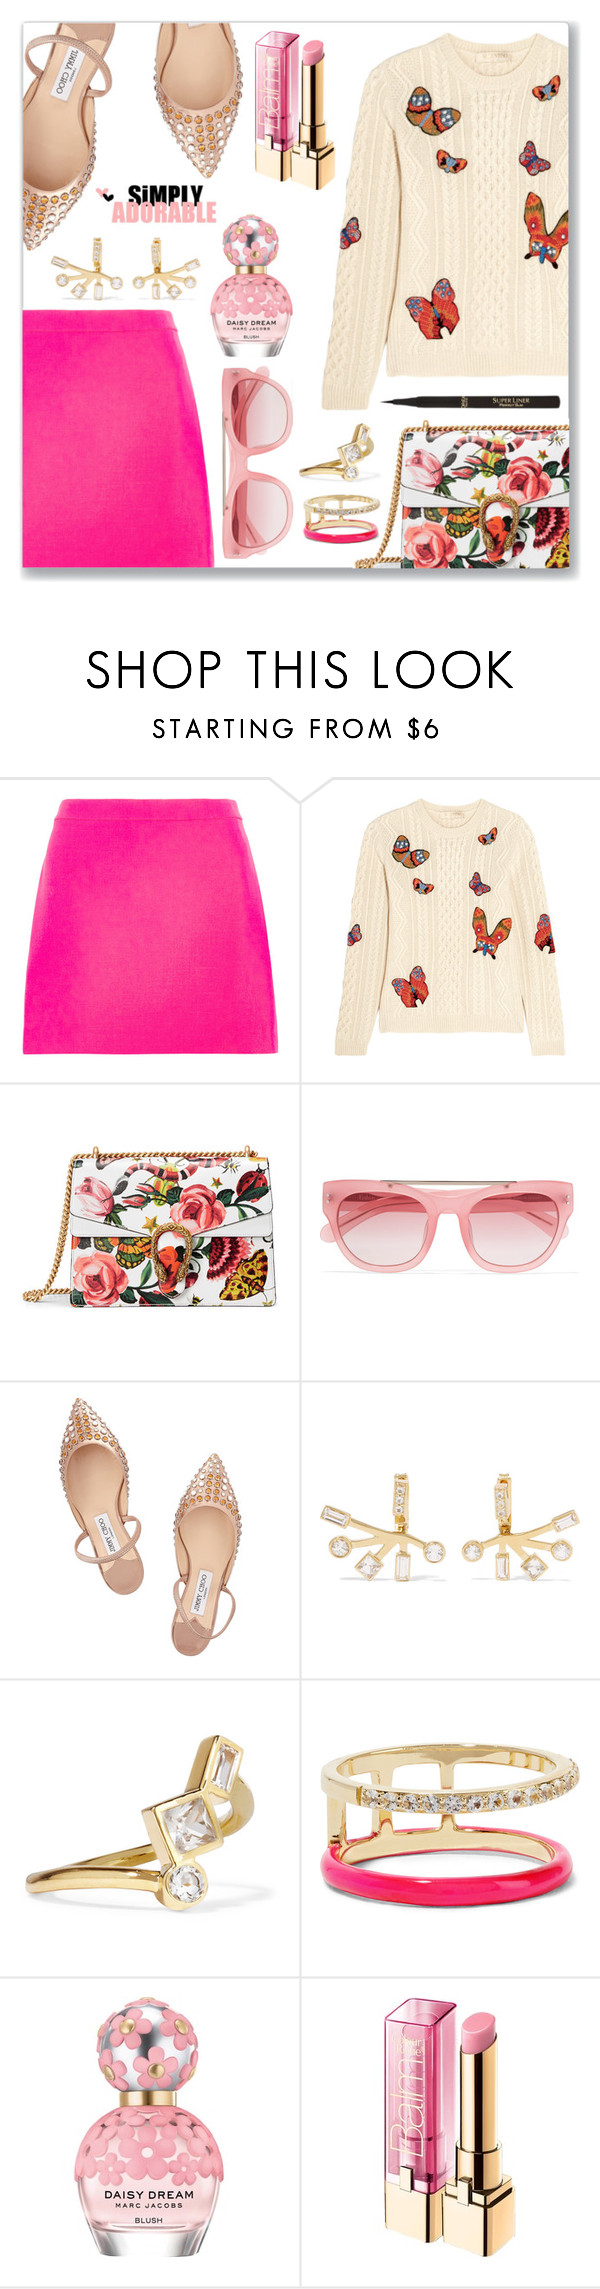 """""""Something that came to mind... Good night :*"""" by dressedbyrose ❤ liked on Polyvore featuring Versace, Valentino, Gucci, Erdem, Jimmy Choo, Elizabeth and James, Marc Jacobs, L'Oréal Paris and polyvoreeditorial"""